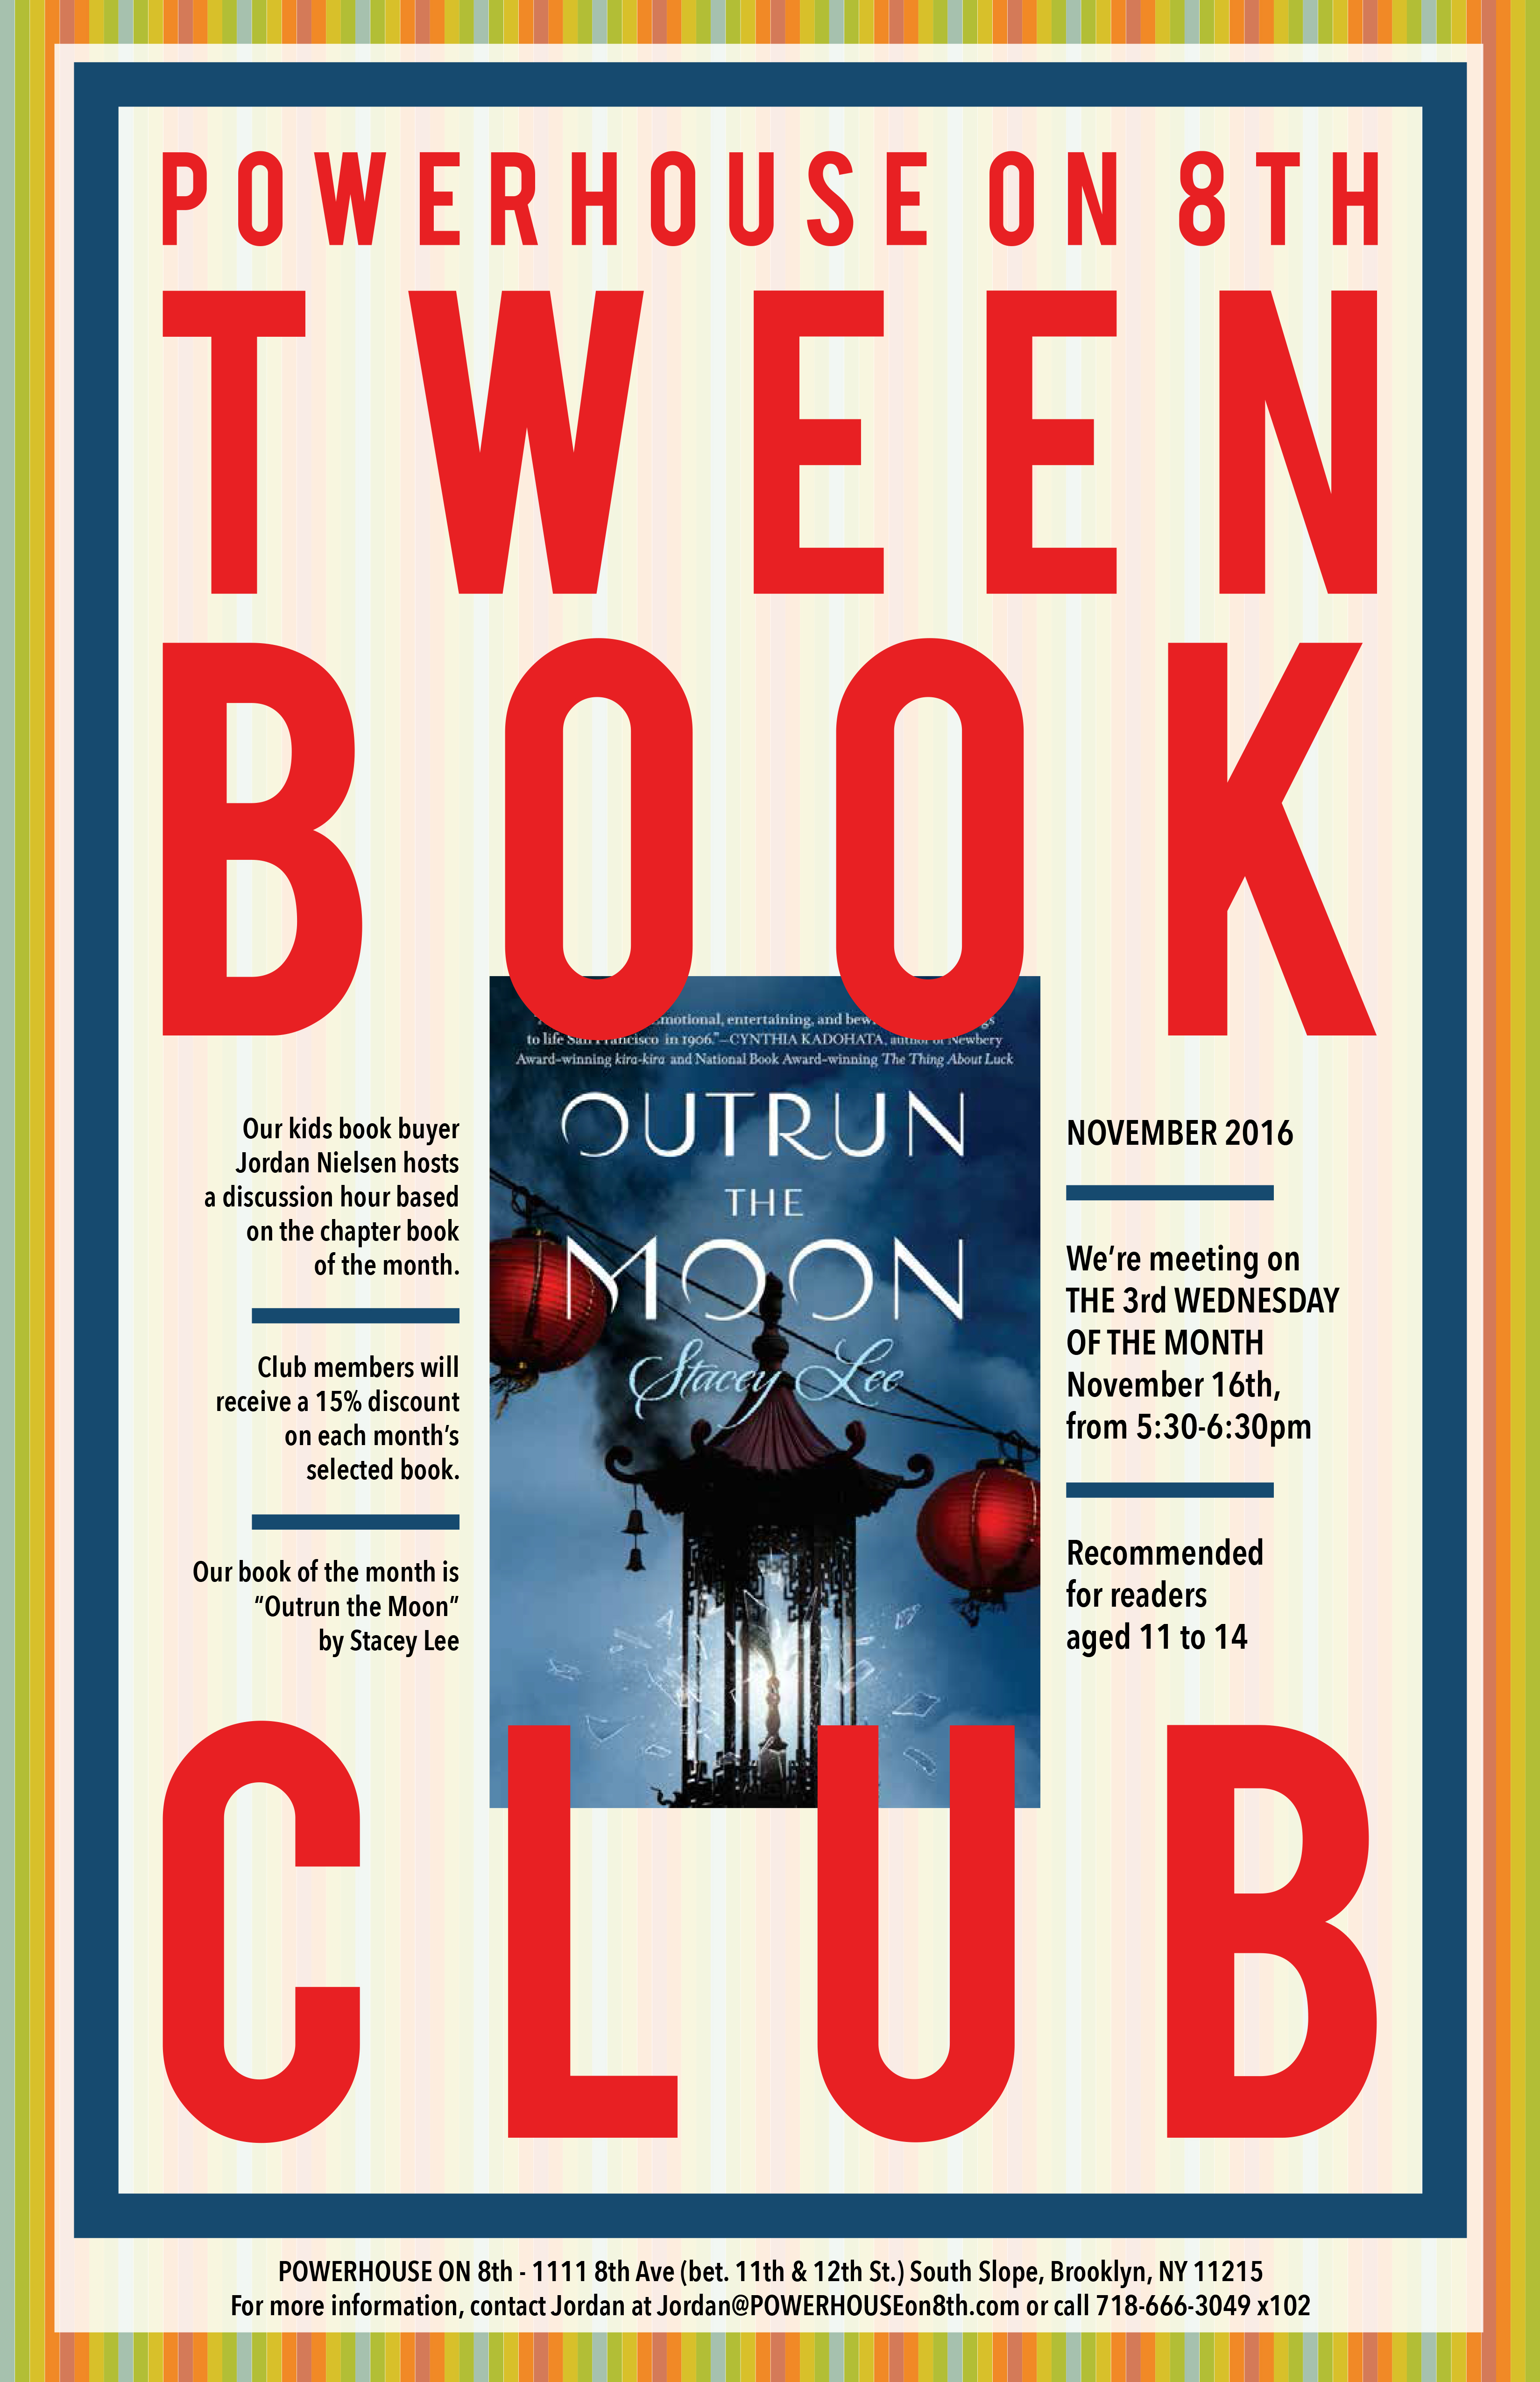 Tween Book Club: Outrun the Moon by Stacey Lee